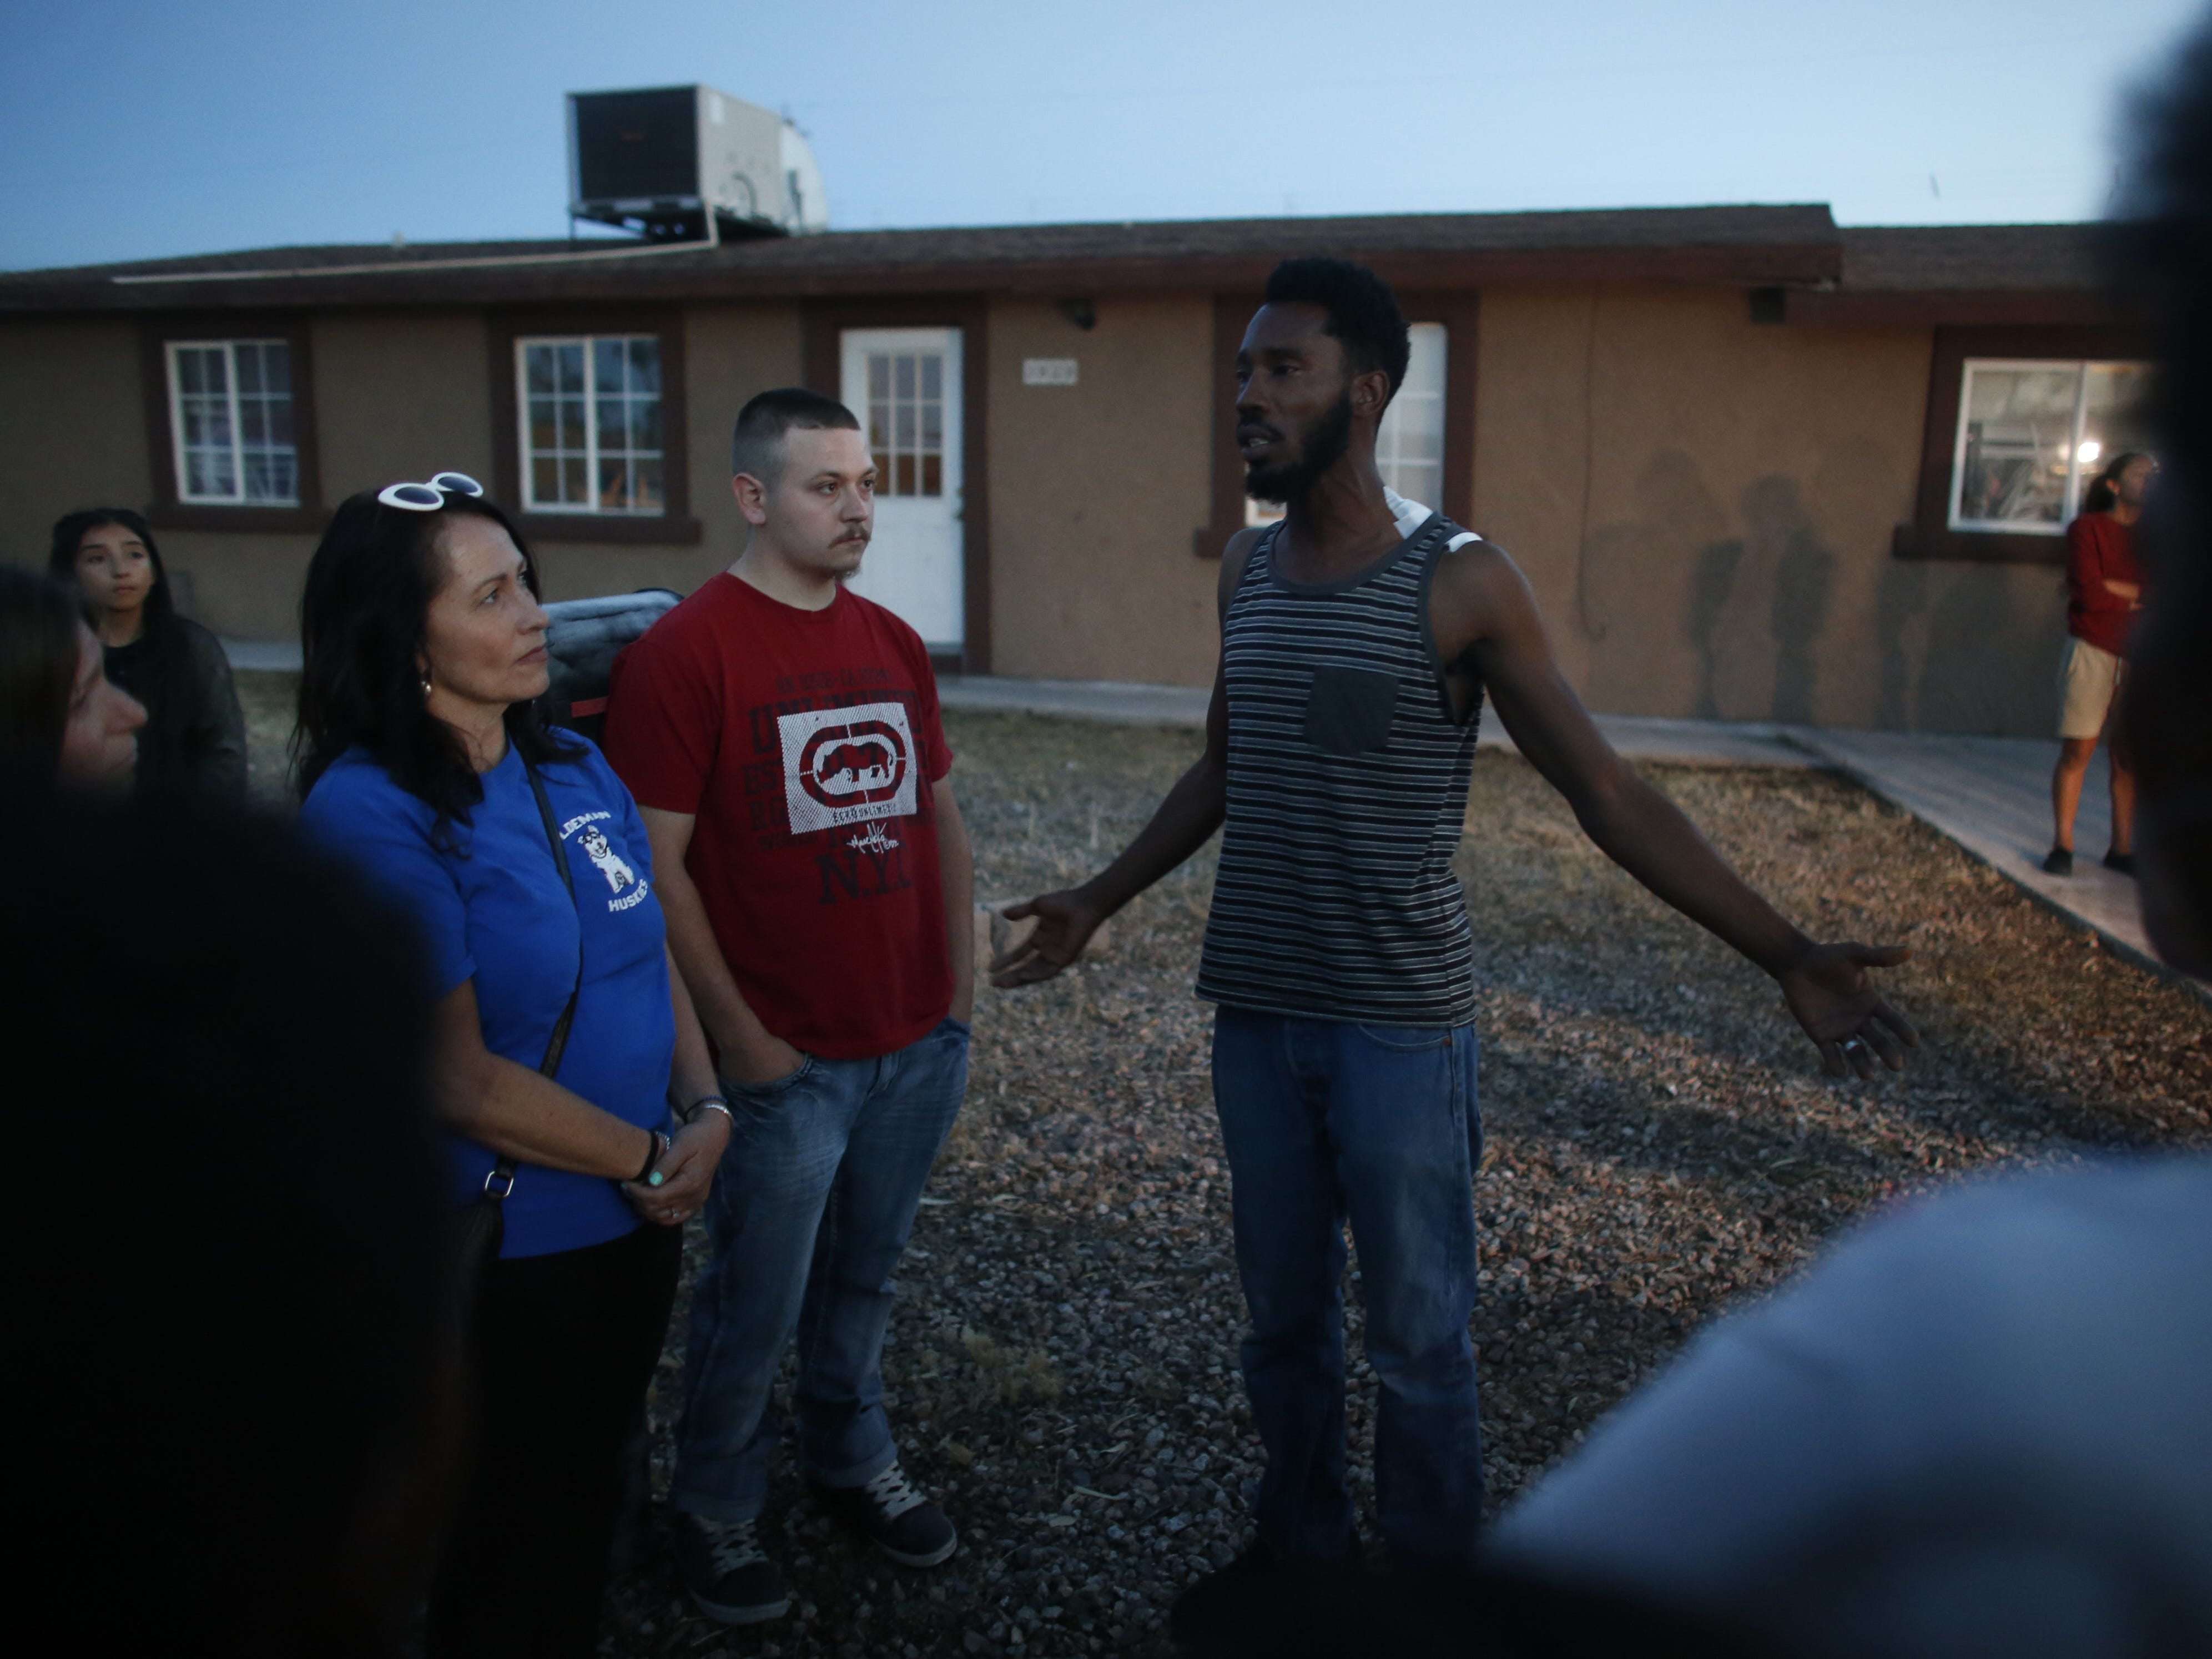 Summer's father Dharquintium Brown speaks to those who came to support their family at a vigil on April 5, 2019, for Summer Bell Brown outside her home where she was shot and killed in Phoenix.